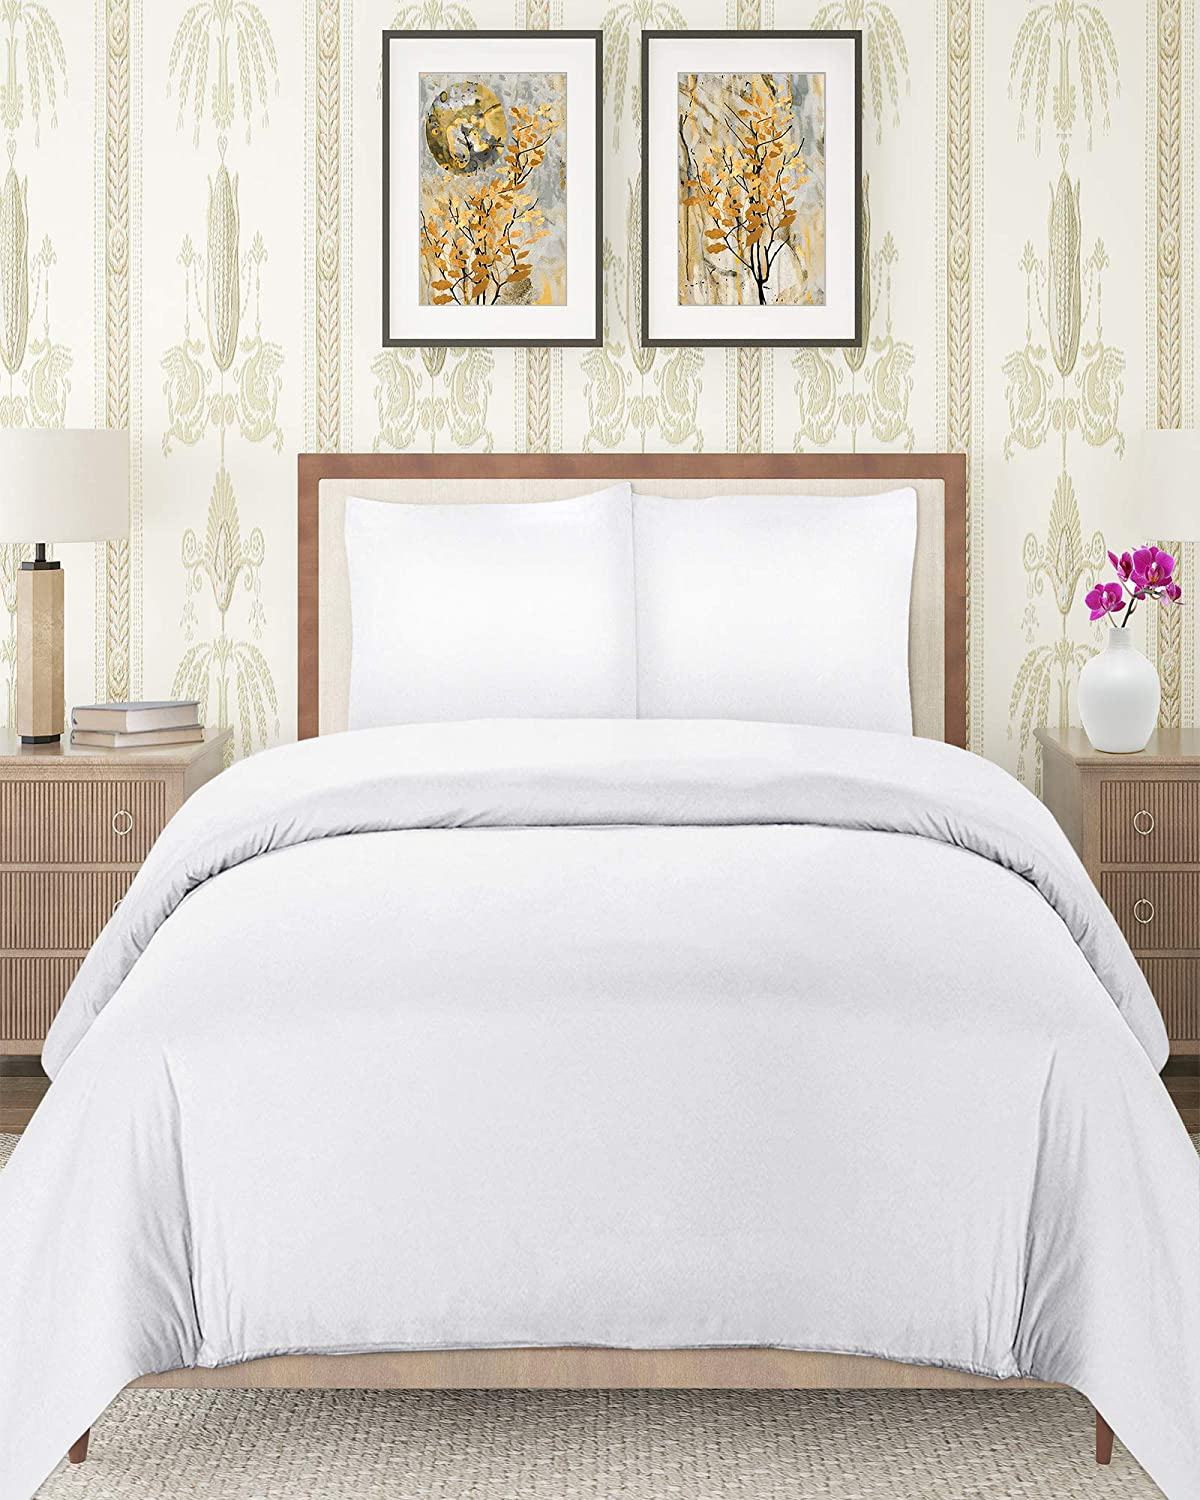 Utopia Bedding 3 Piece Queen Duvet Cover Set with 2 Pillow Shams, (Queen White)